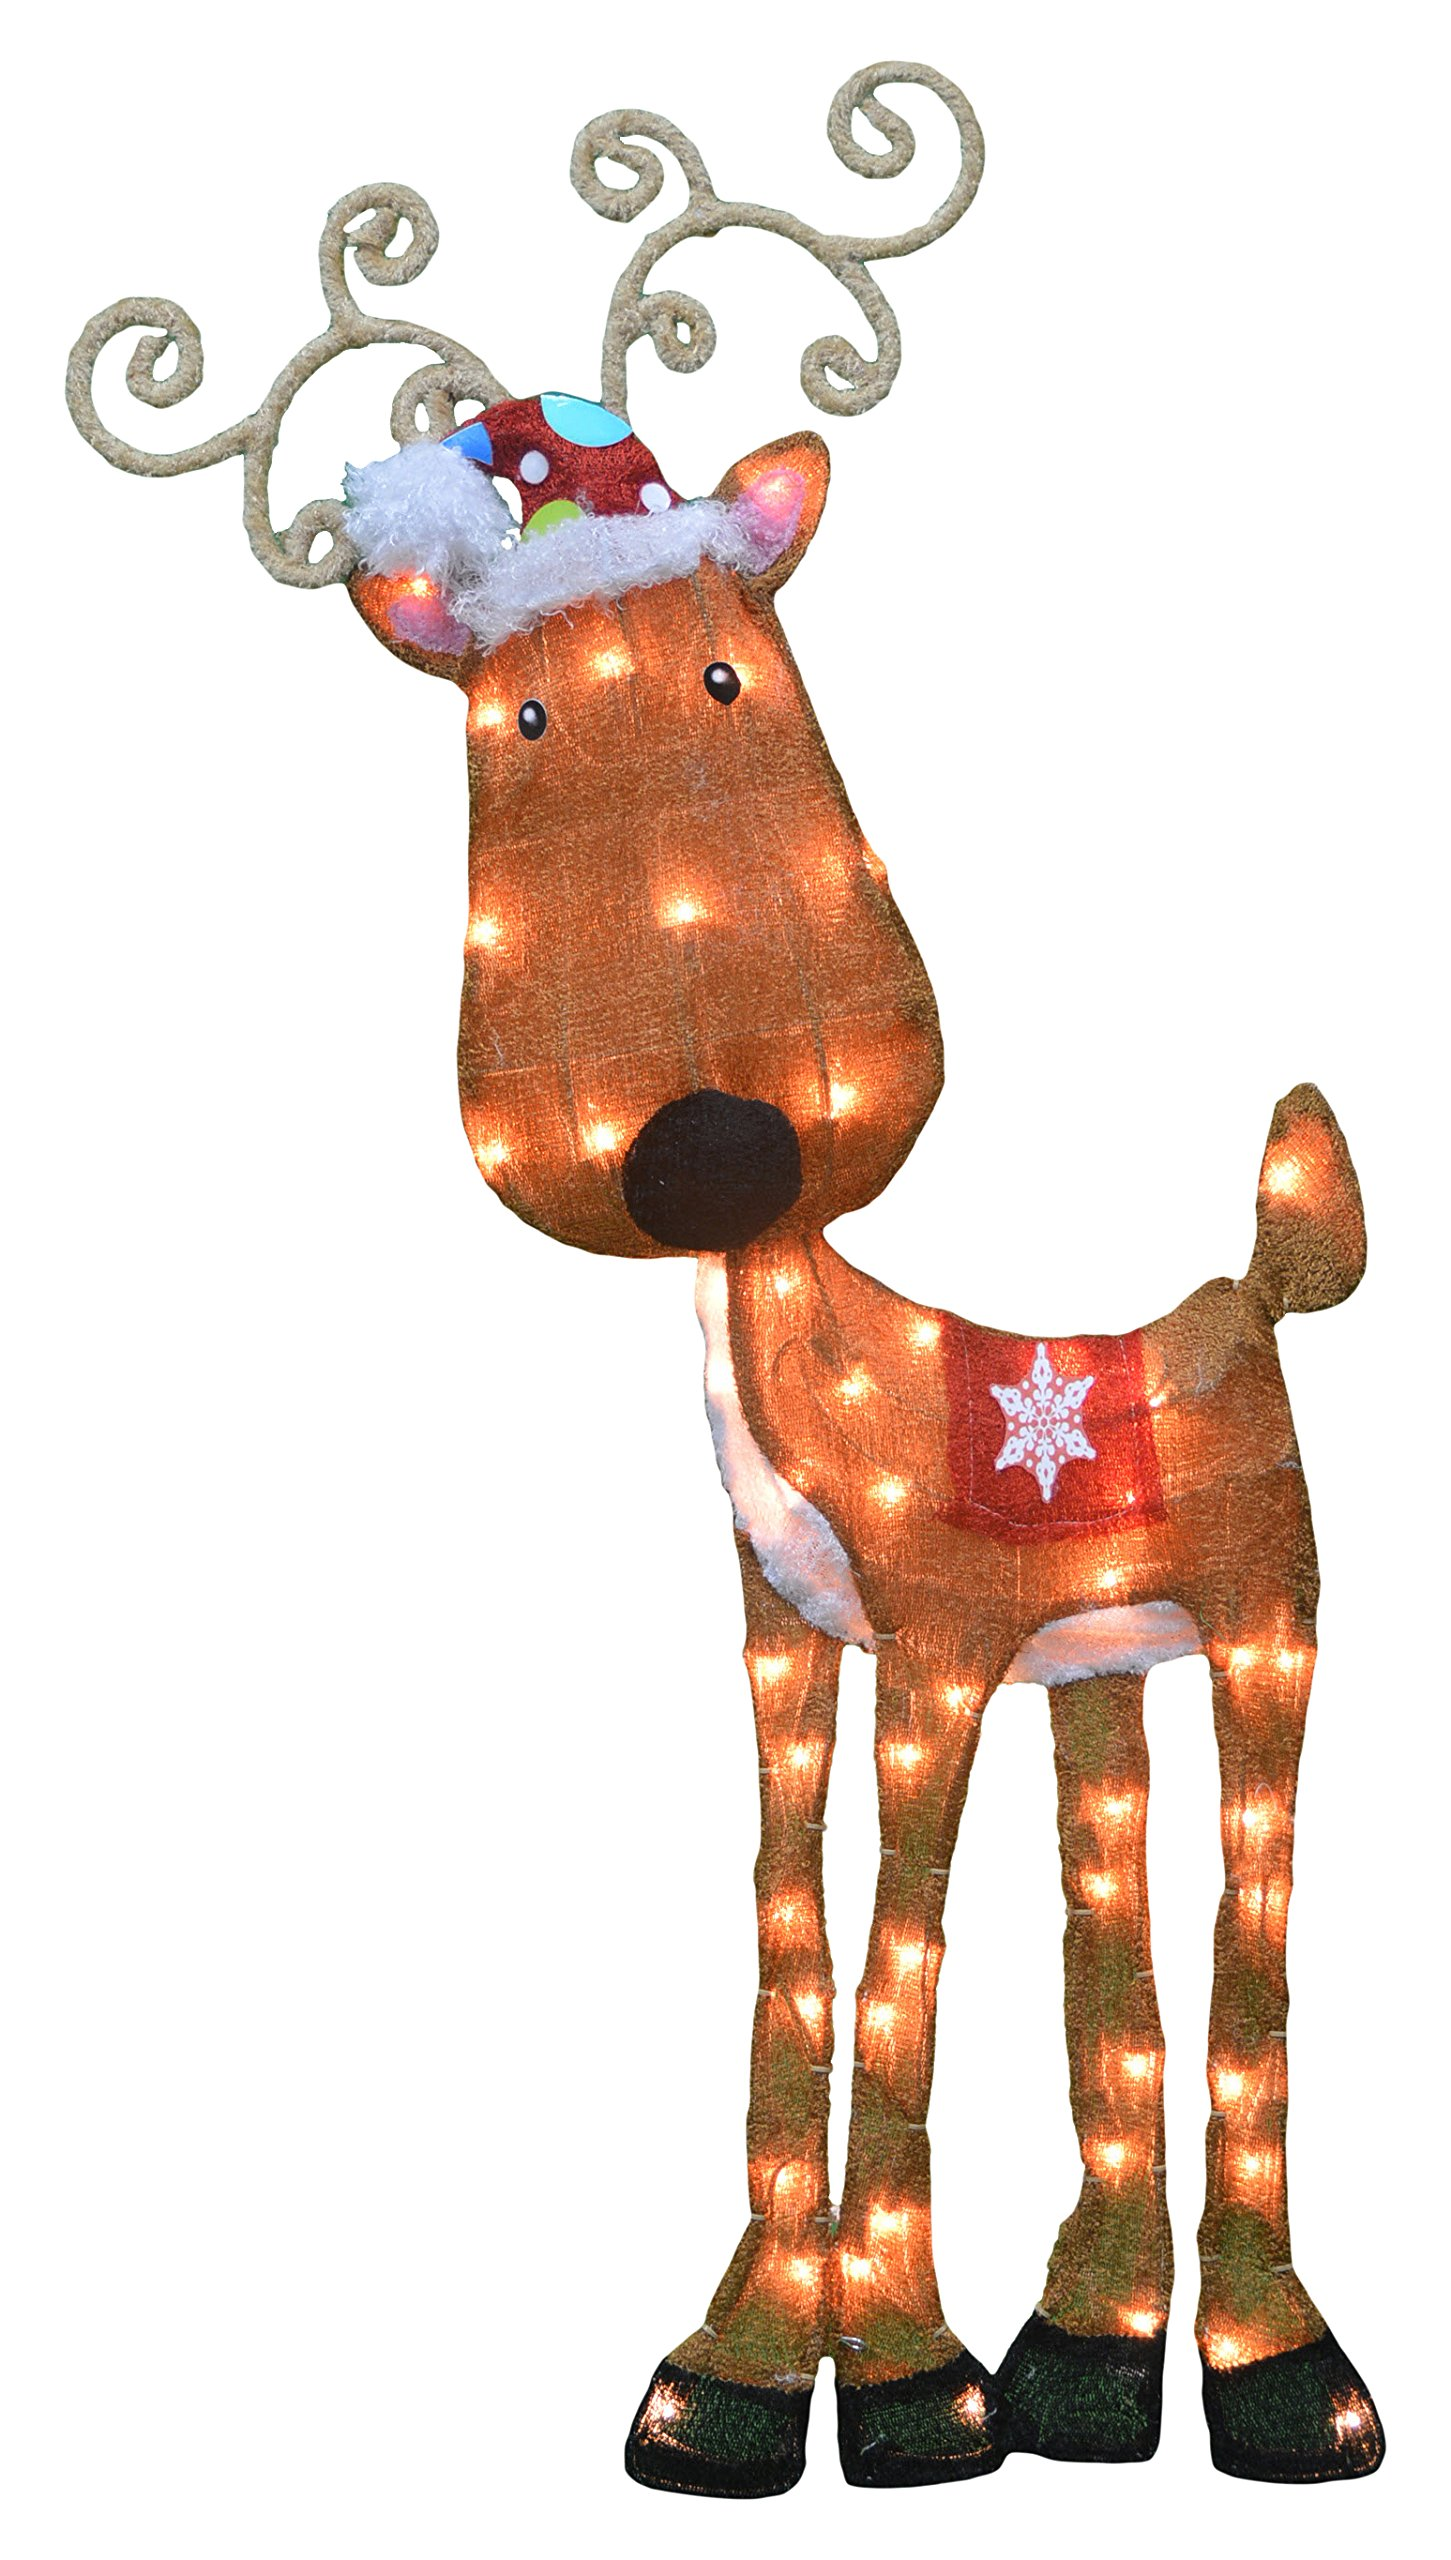 ProductWorks 32-Inch Pre-Lit Victoria Hutto Reindeer Christmas Yard Decoration, 50 Lights